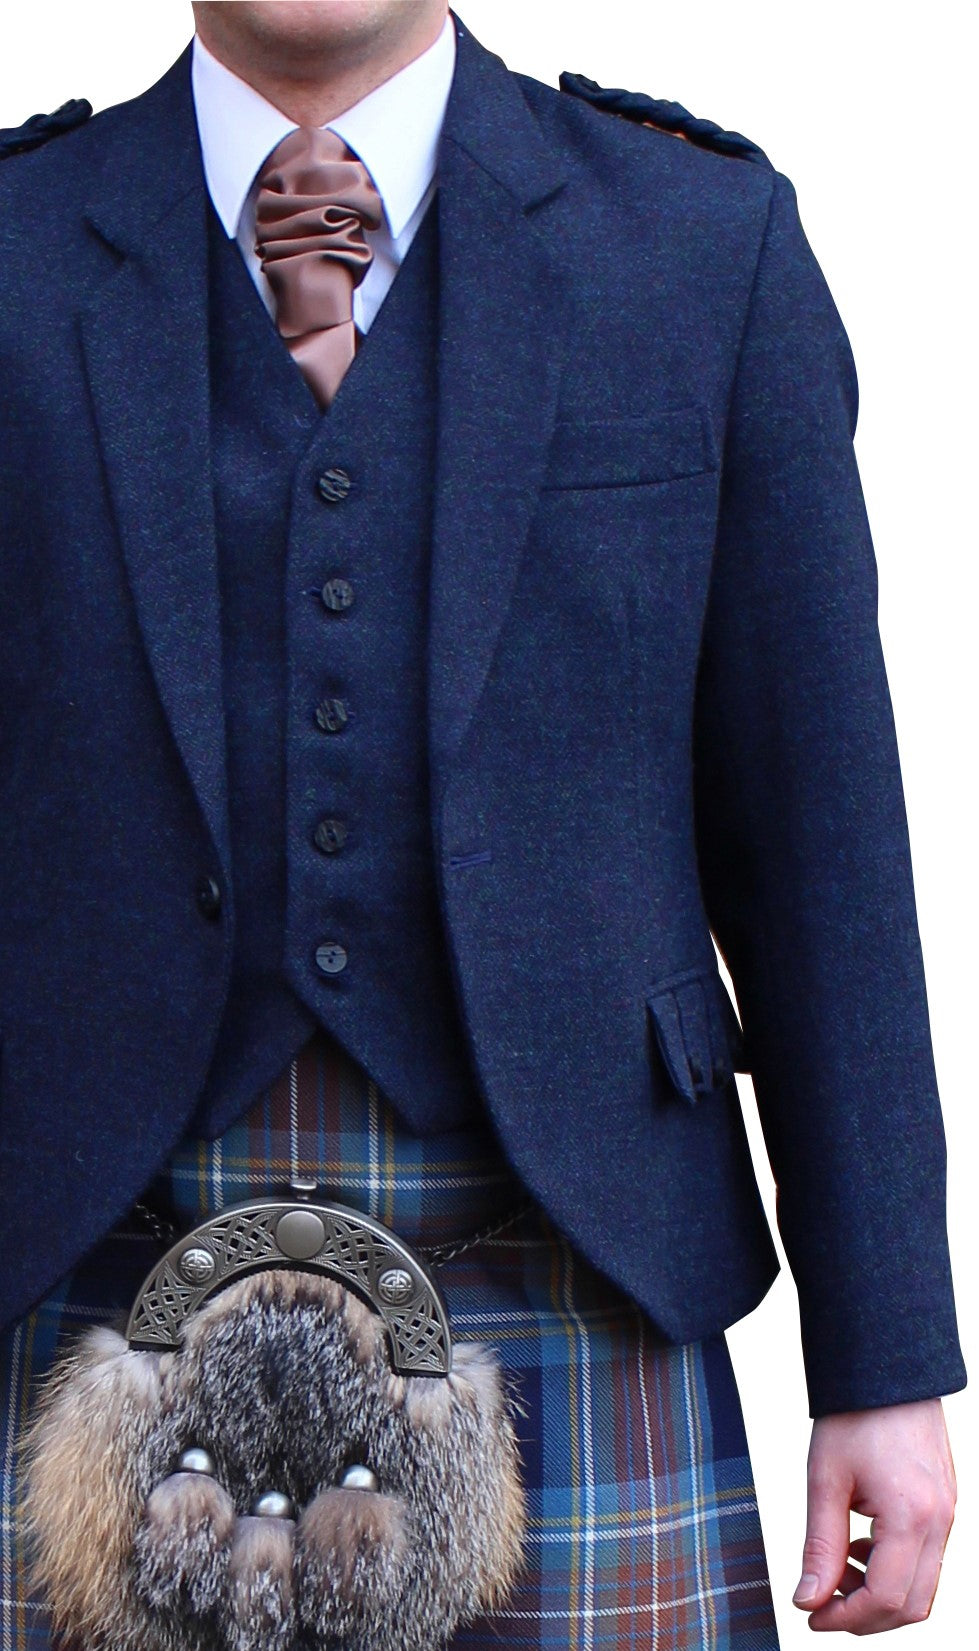 Midnight Blue Tweed Crail Jacket & Vest - Anderson Kilts